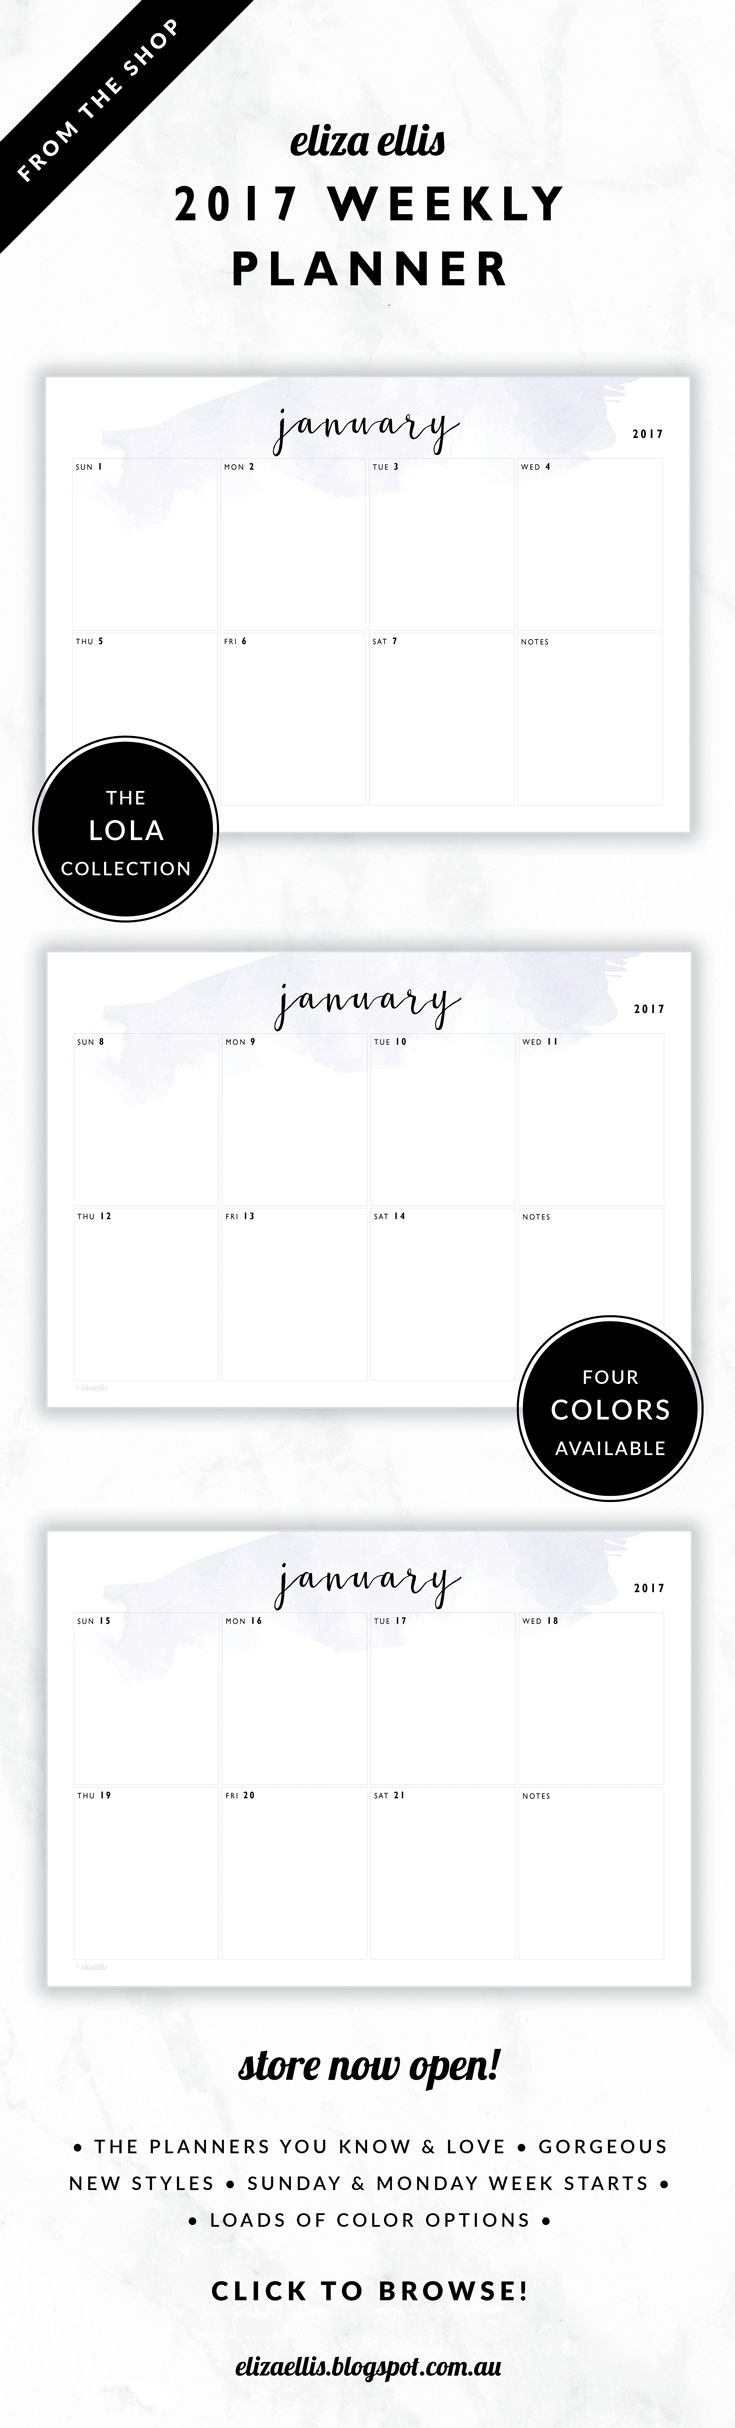 2017 Weekly Planner // The Lola Collection by Eliza Ellis. Delicate watercolor design with pretty hand drawn calligraphy font. Available in 4 colors – lilac, viola, snowdrop and peony. Monday and Sunday week starts included. Documents print to A4 or A5.